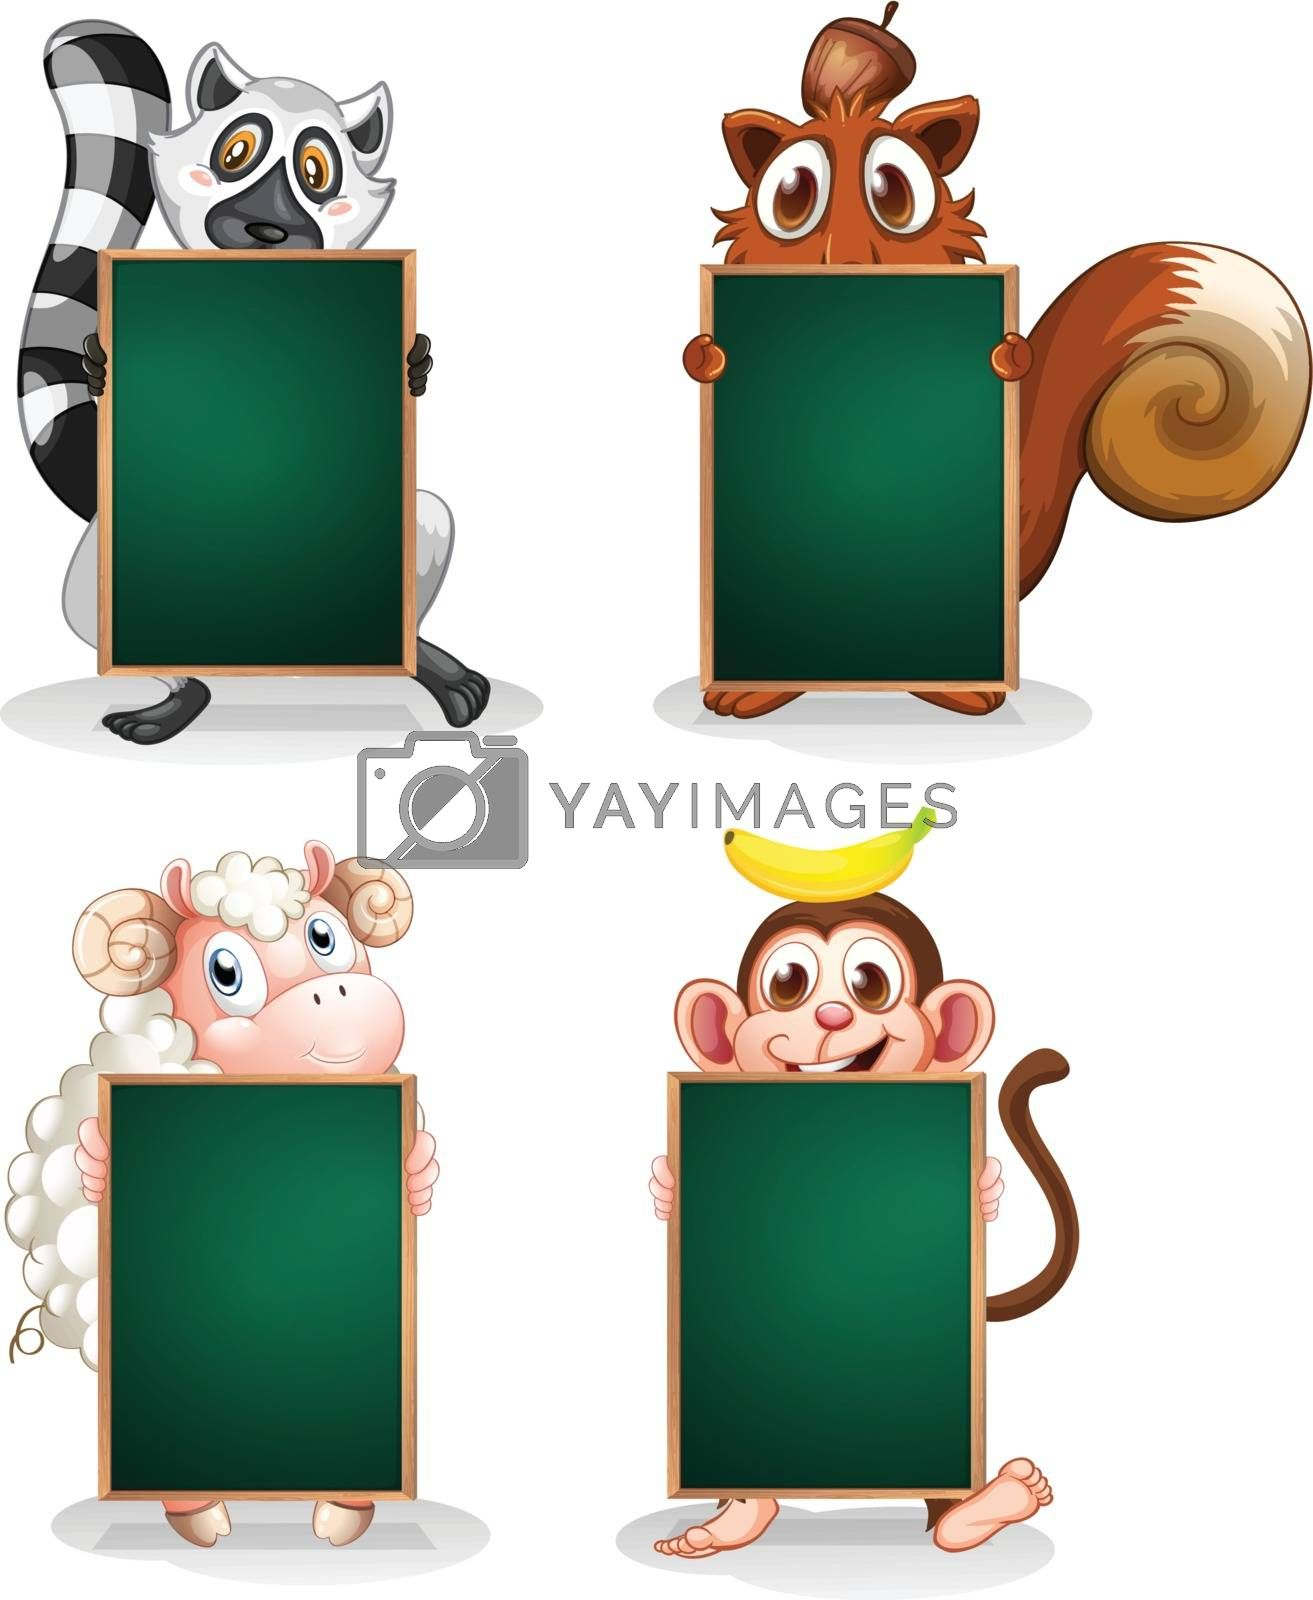 Illustration of the animals holding empty boards on a white background